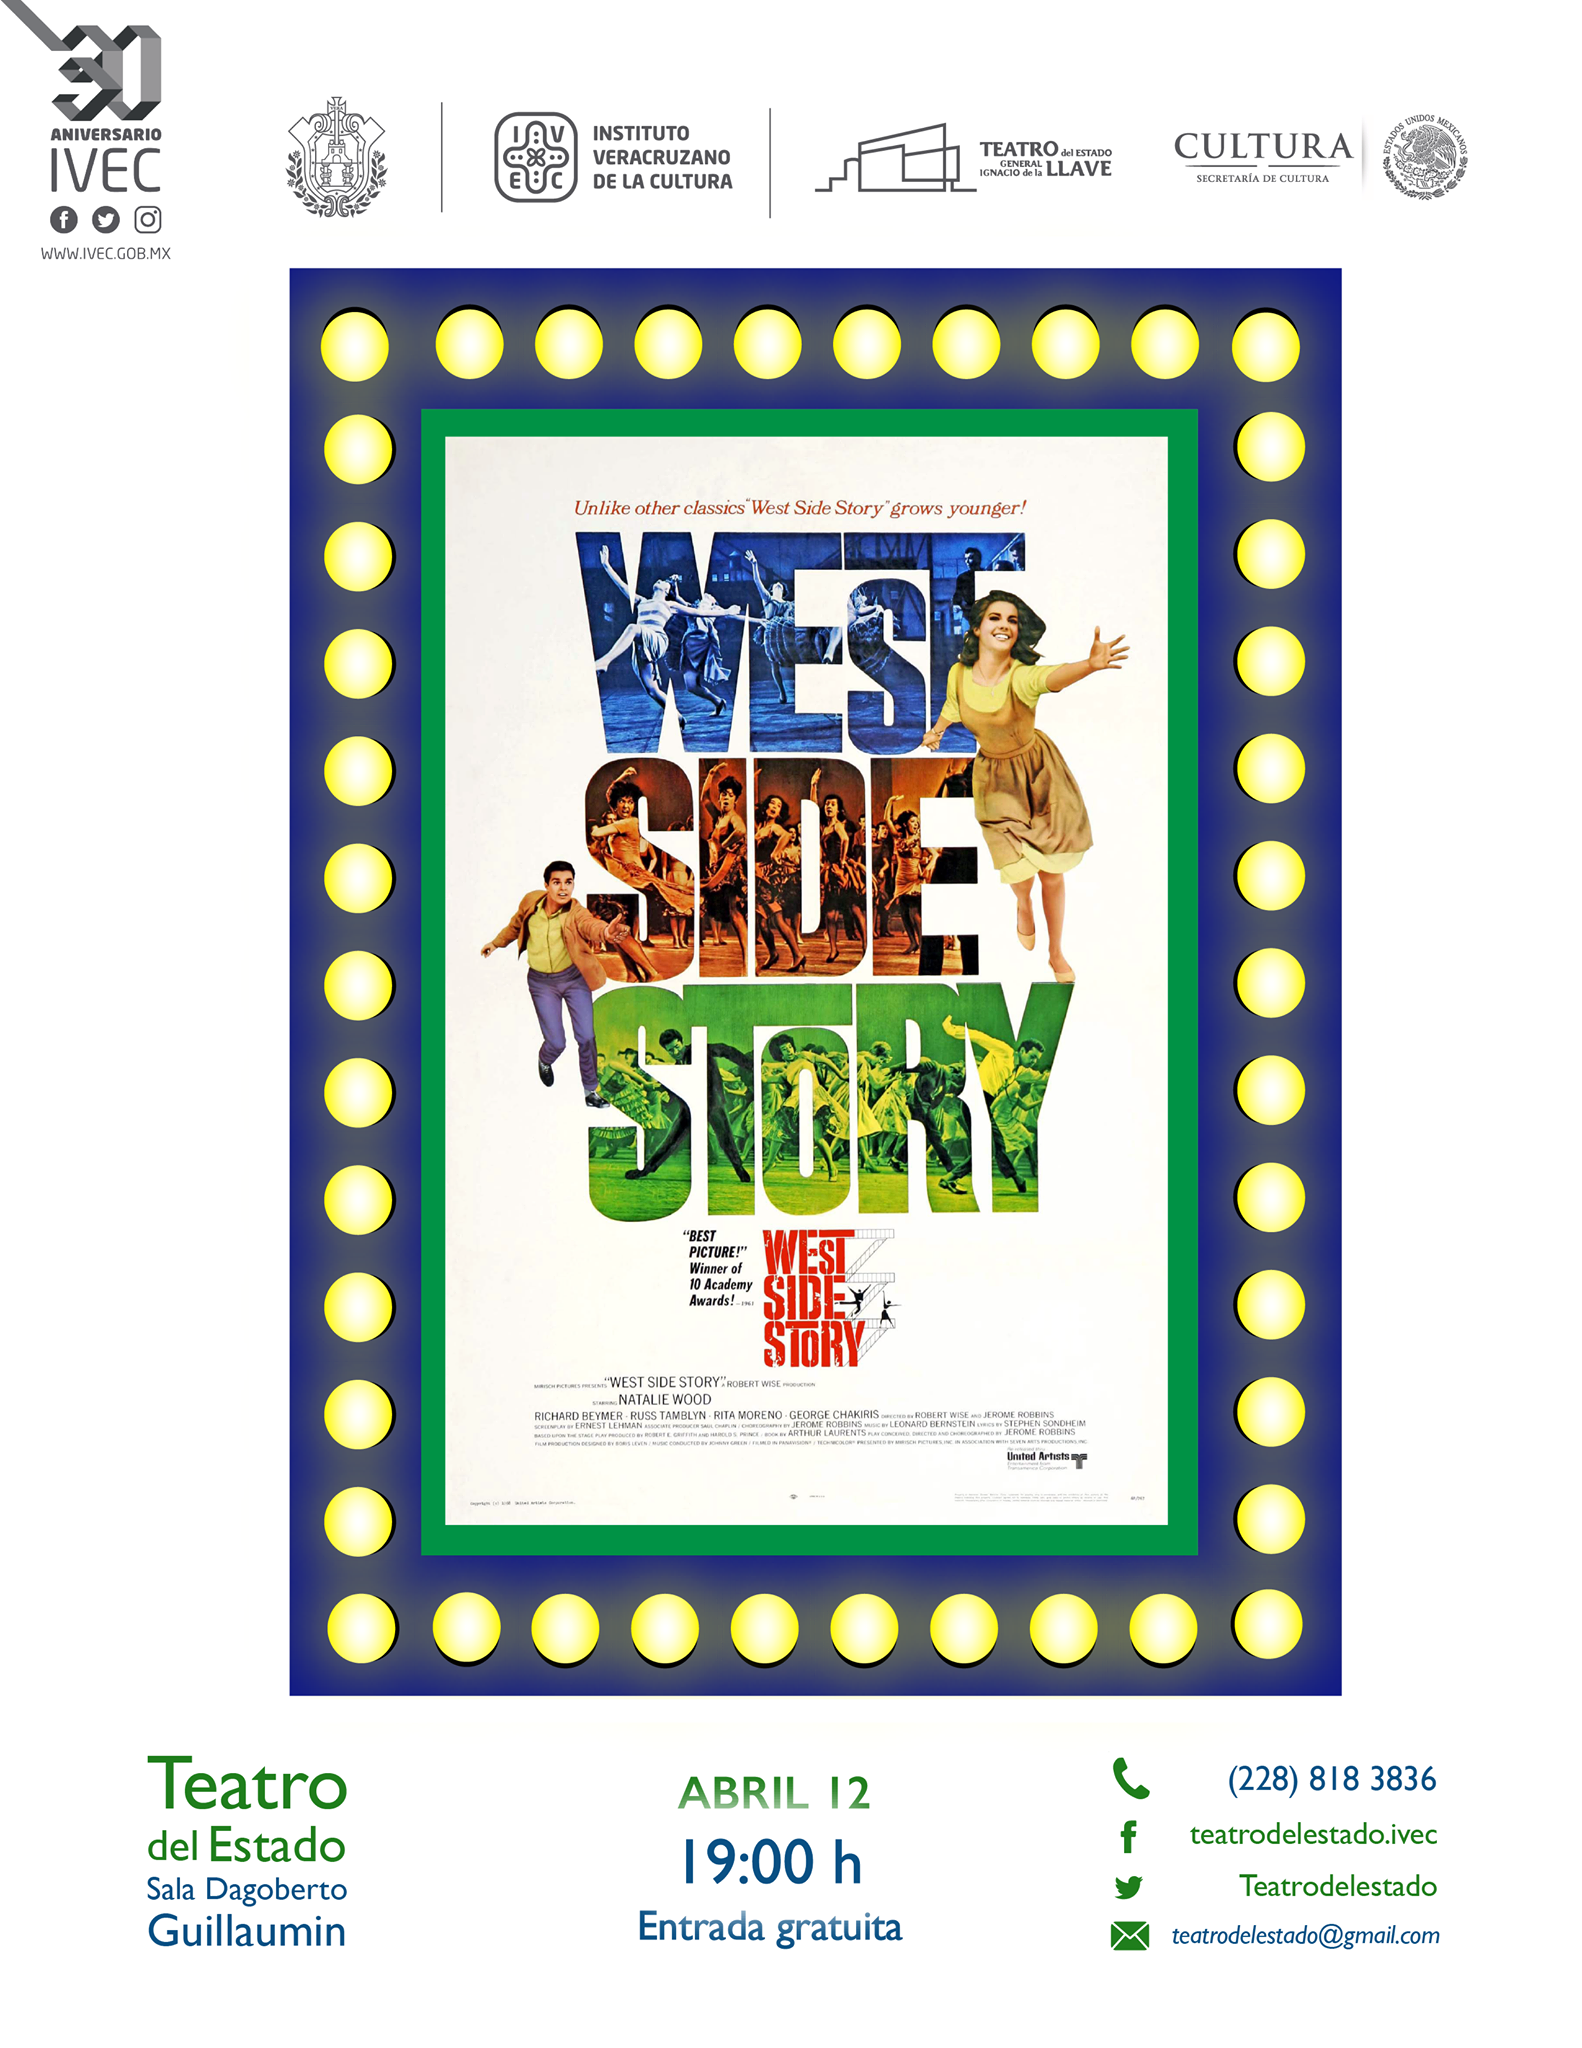 Invita IVEC a ver la cinta multipremiada West side story, en Teatro del Estado